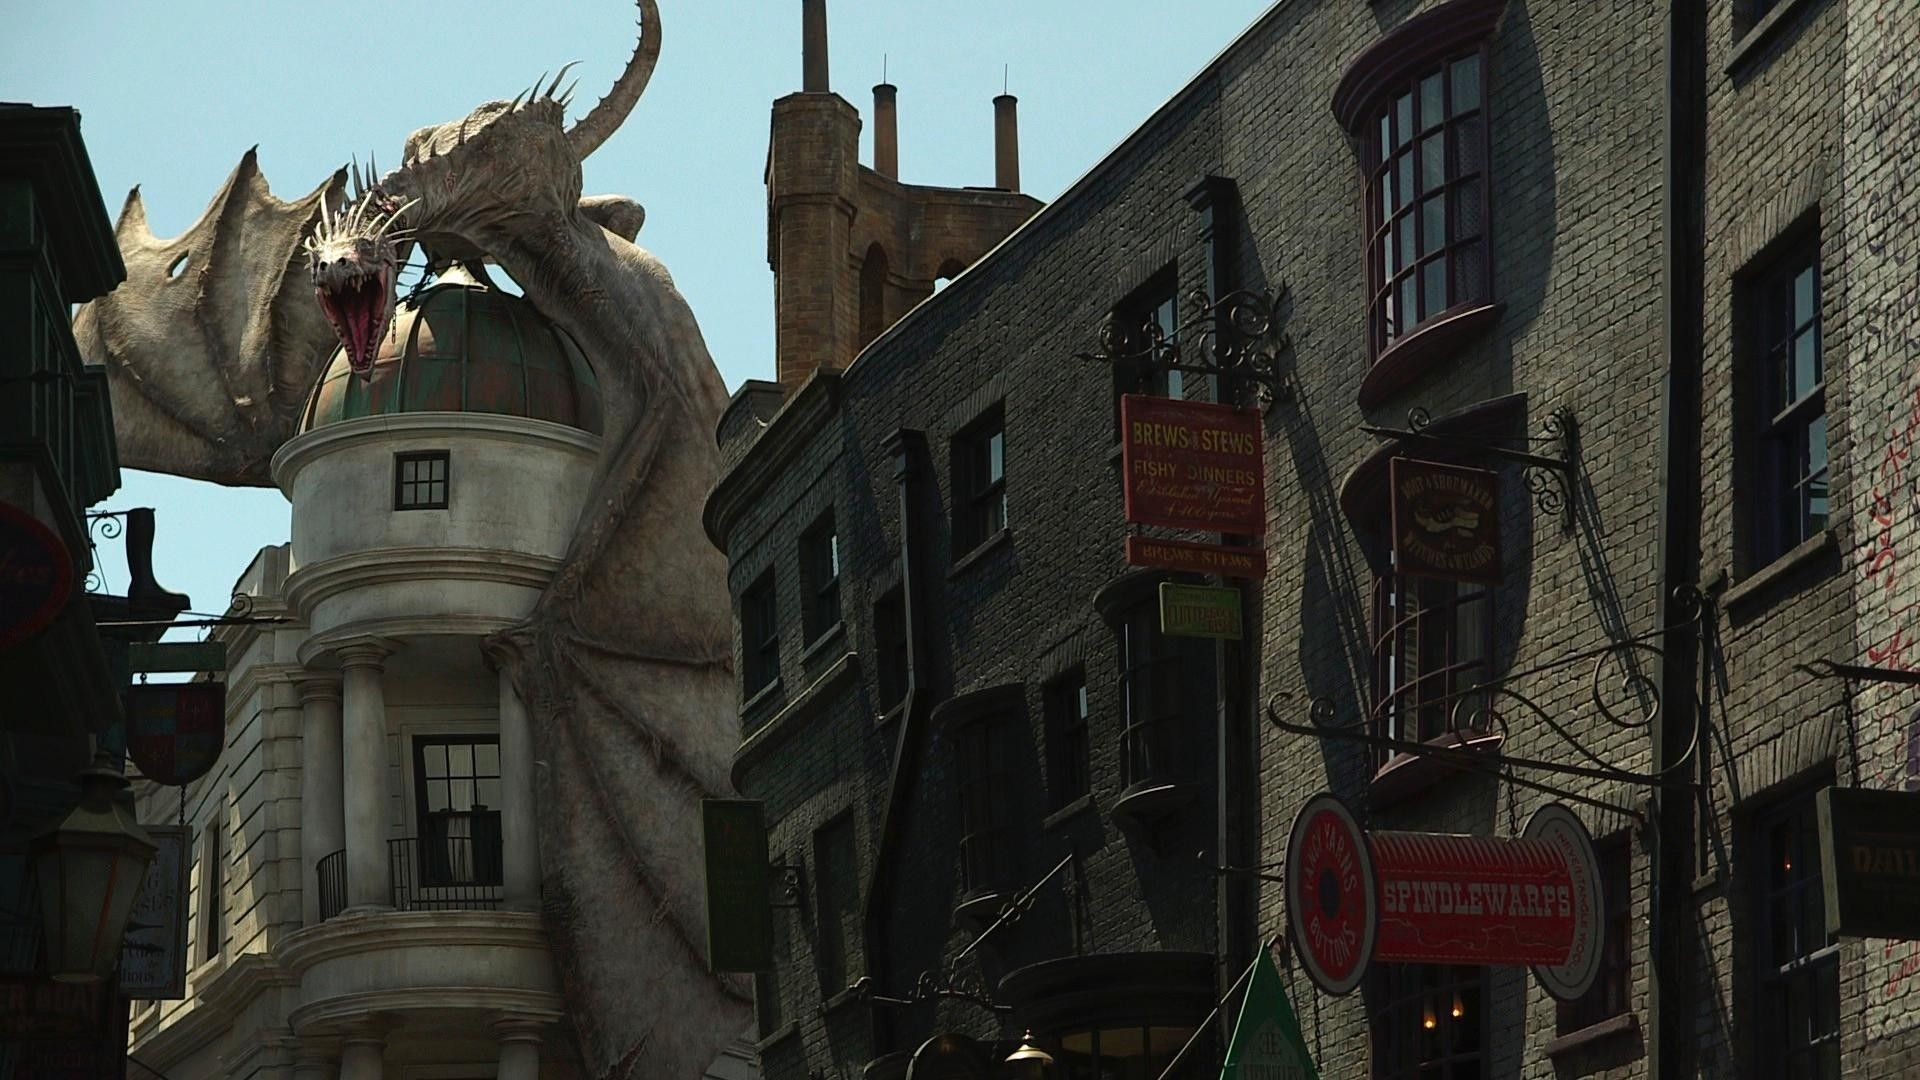 Watch Go Inside The New Wizarding World Of Harry Potter And Diagon Alley Wizarding World Of Harry Potter Harry Potter Park Wizarding World